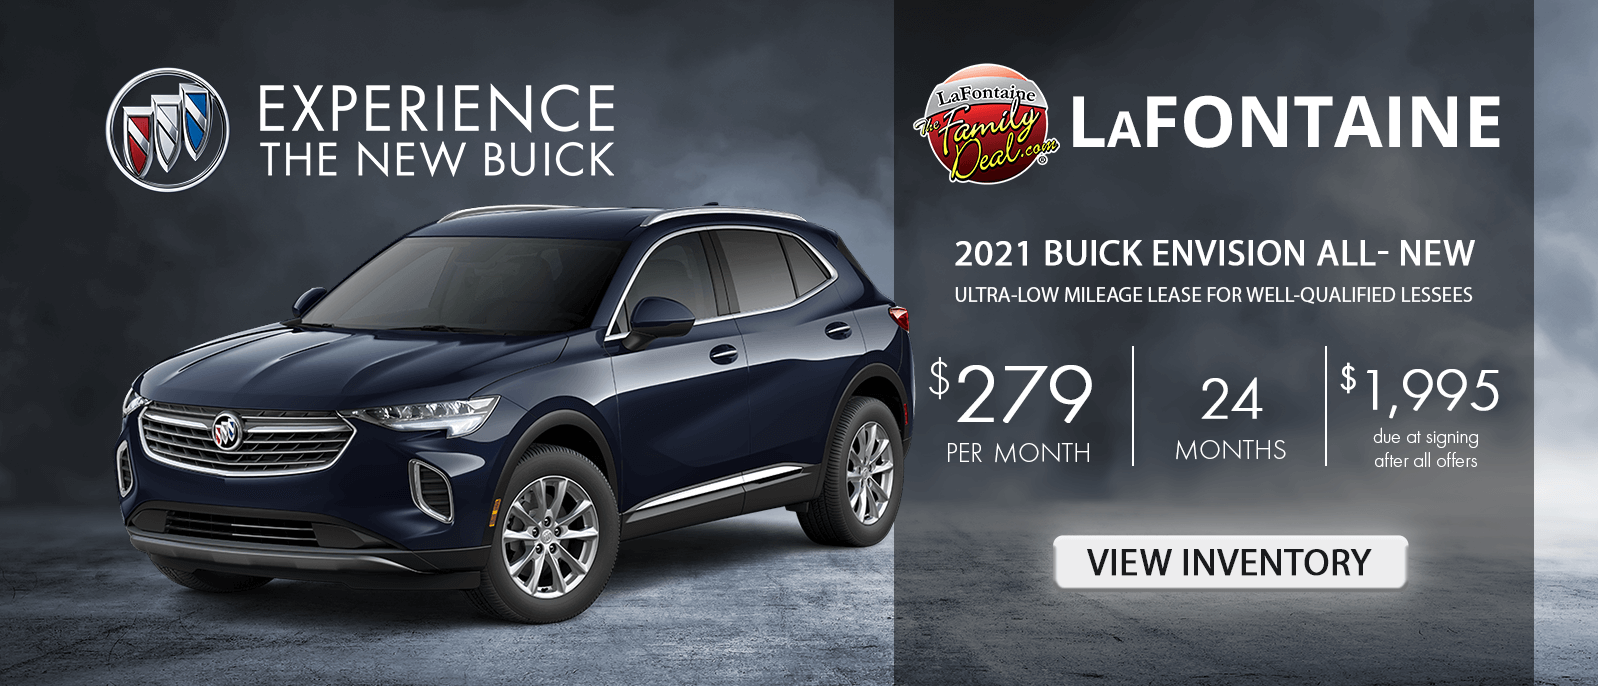 1598x686_Buick_UpdatedBanners_Envision